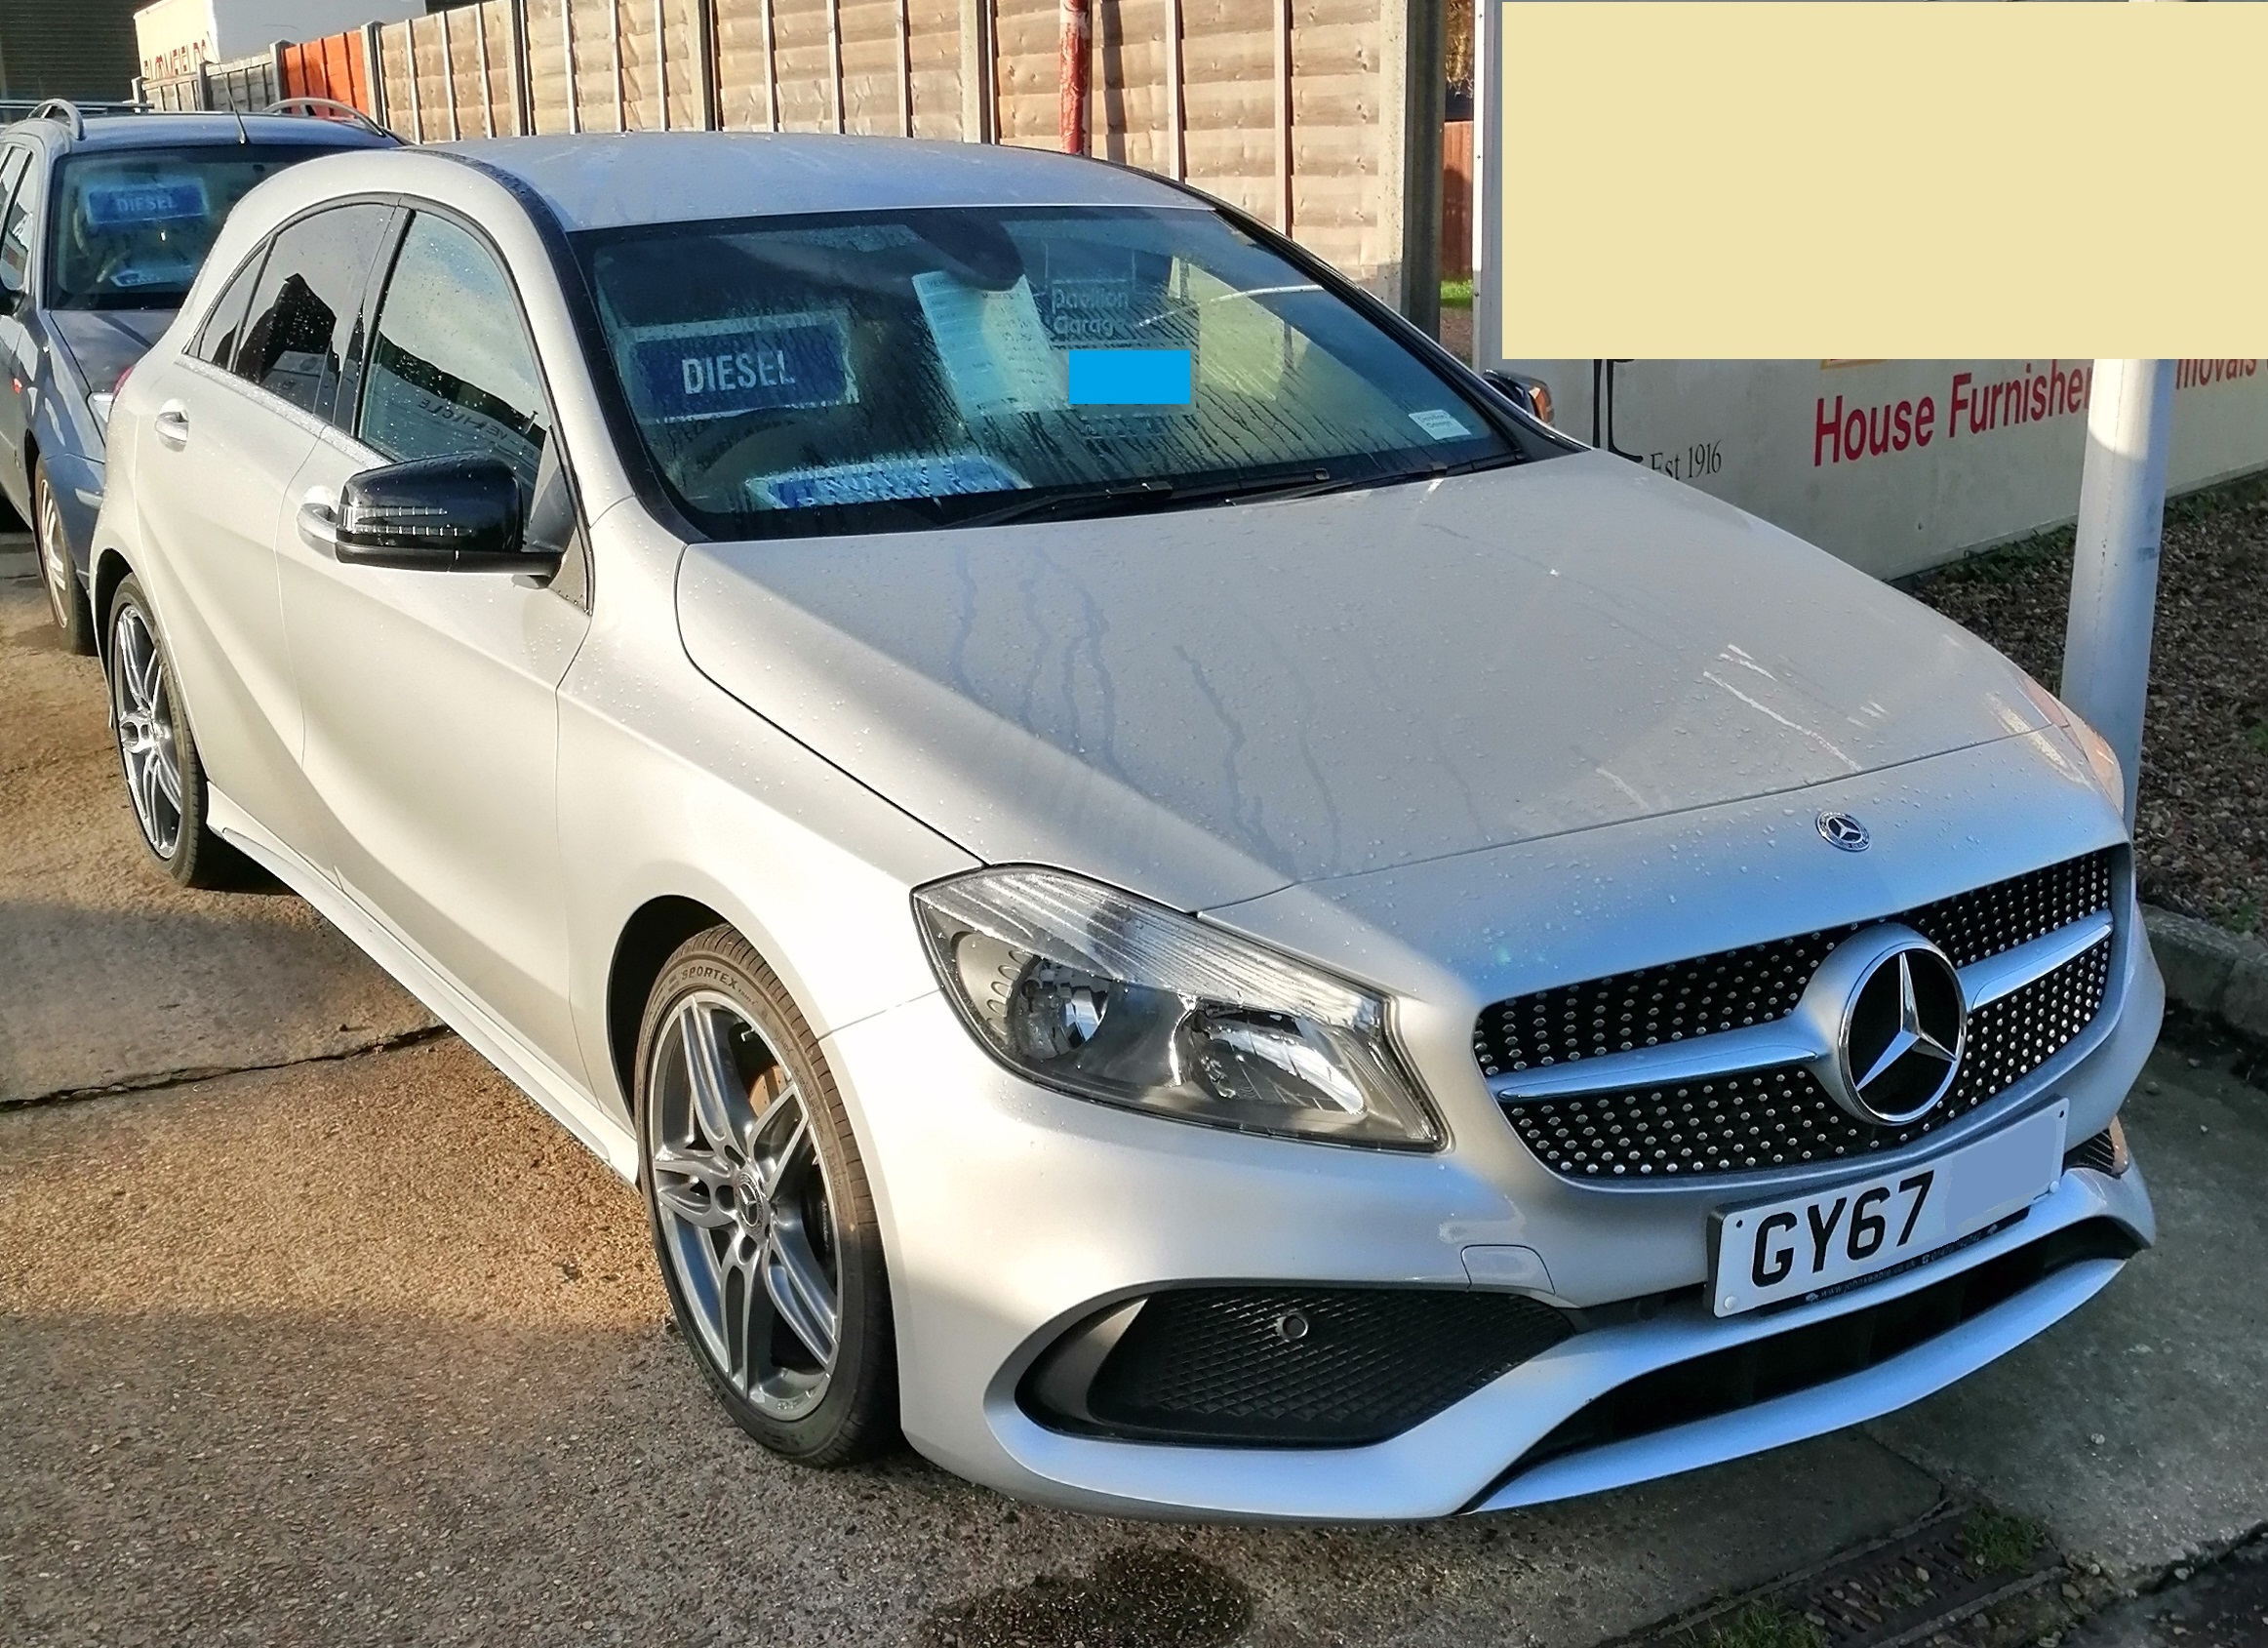 Mercedes A180D AMG Line 1461cc - Diesel 2017 / 67 39,240 miles Service History Spare Key £155 per year Road Tax £15,595